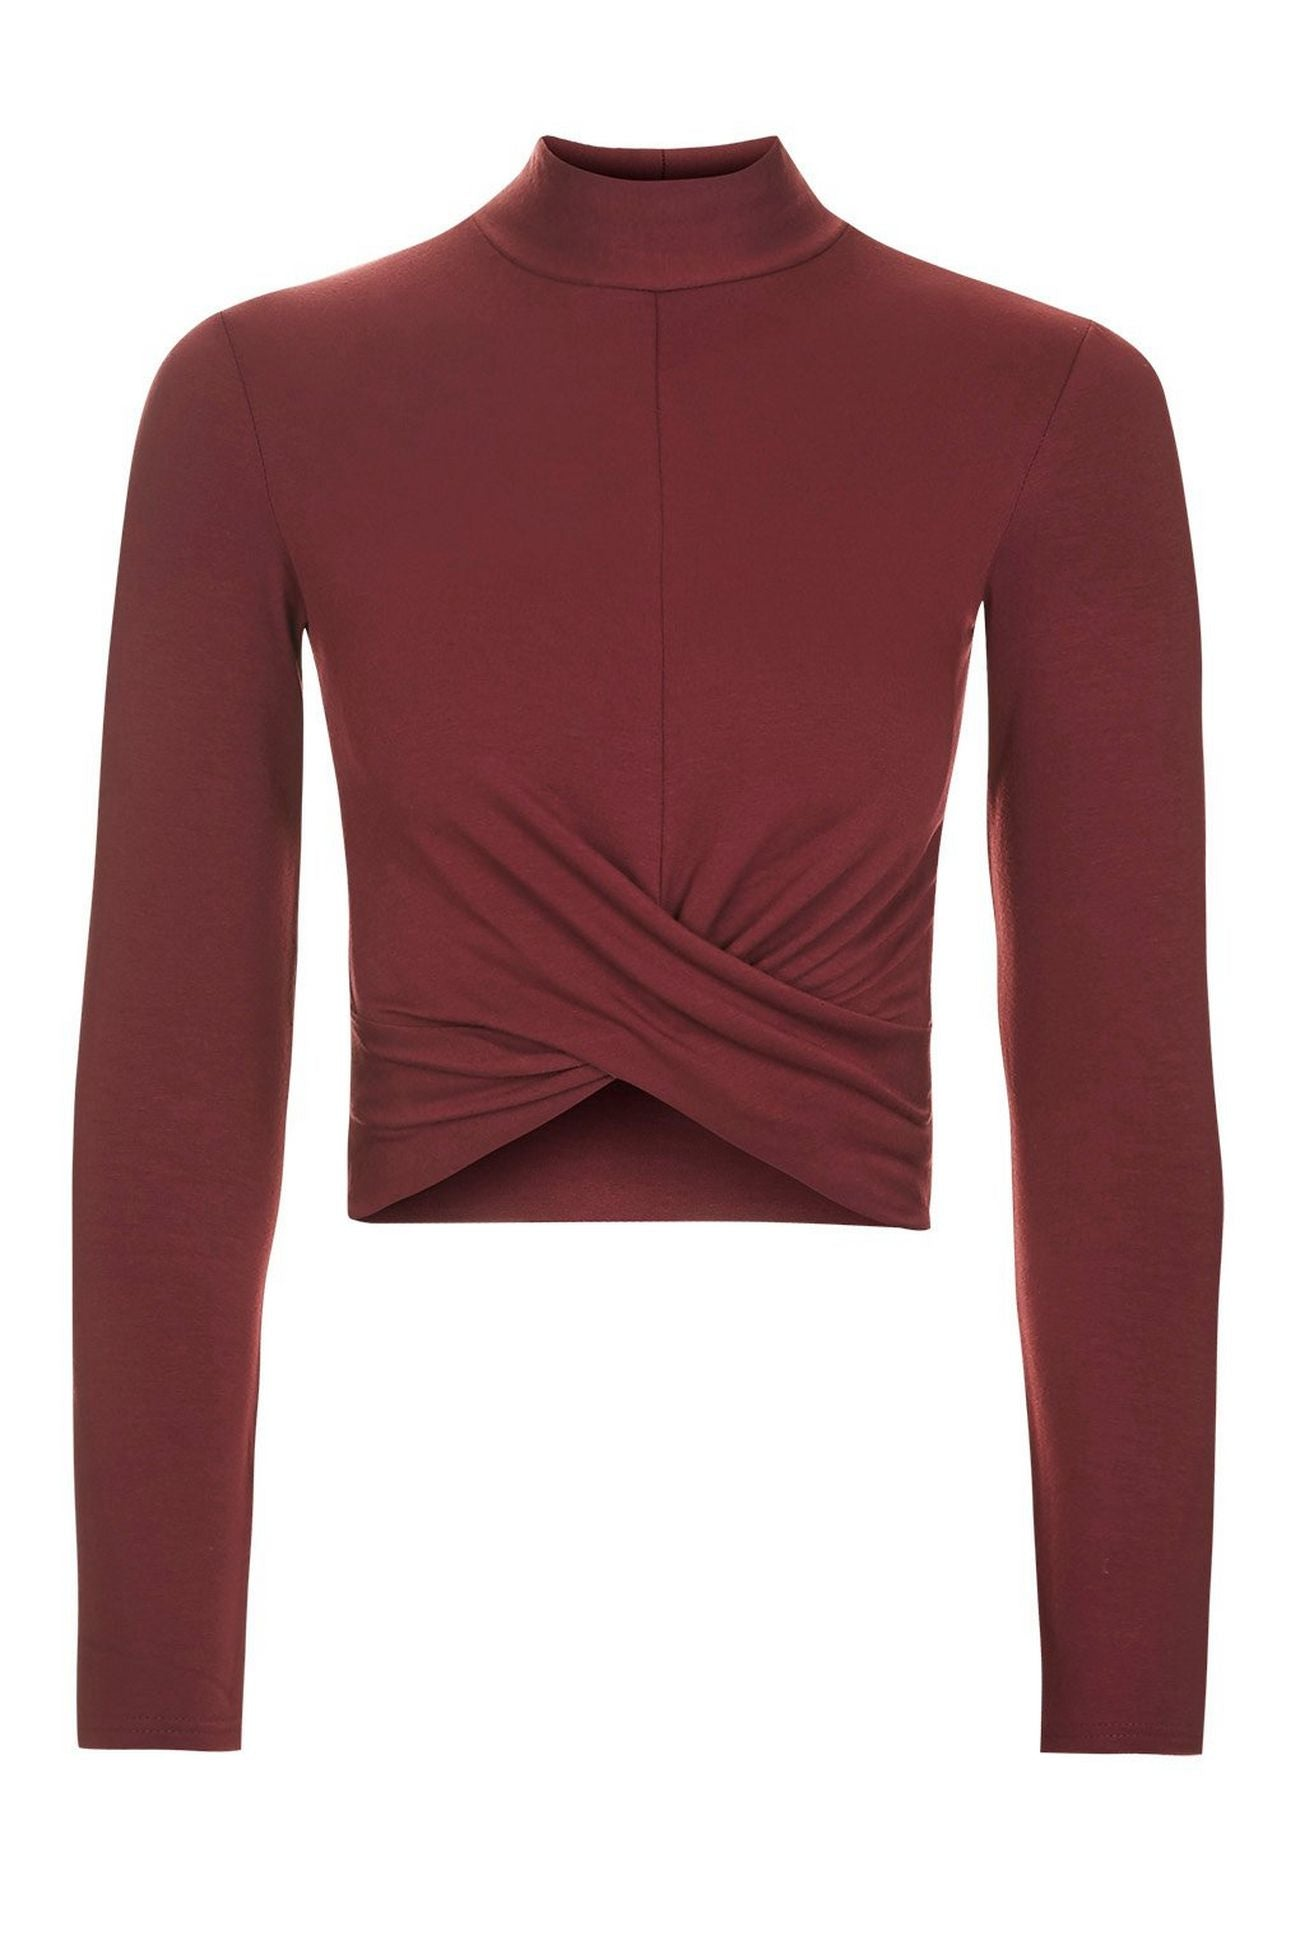 Topshop Petite Womens Wine Long Sleeve Twist Front Crop Top